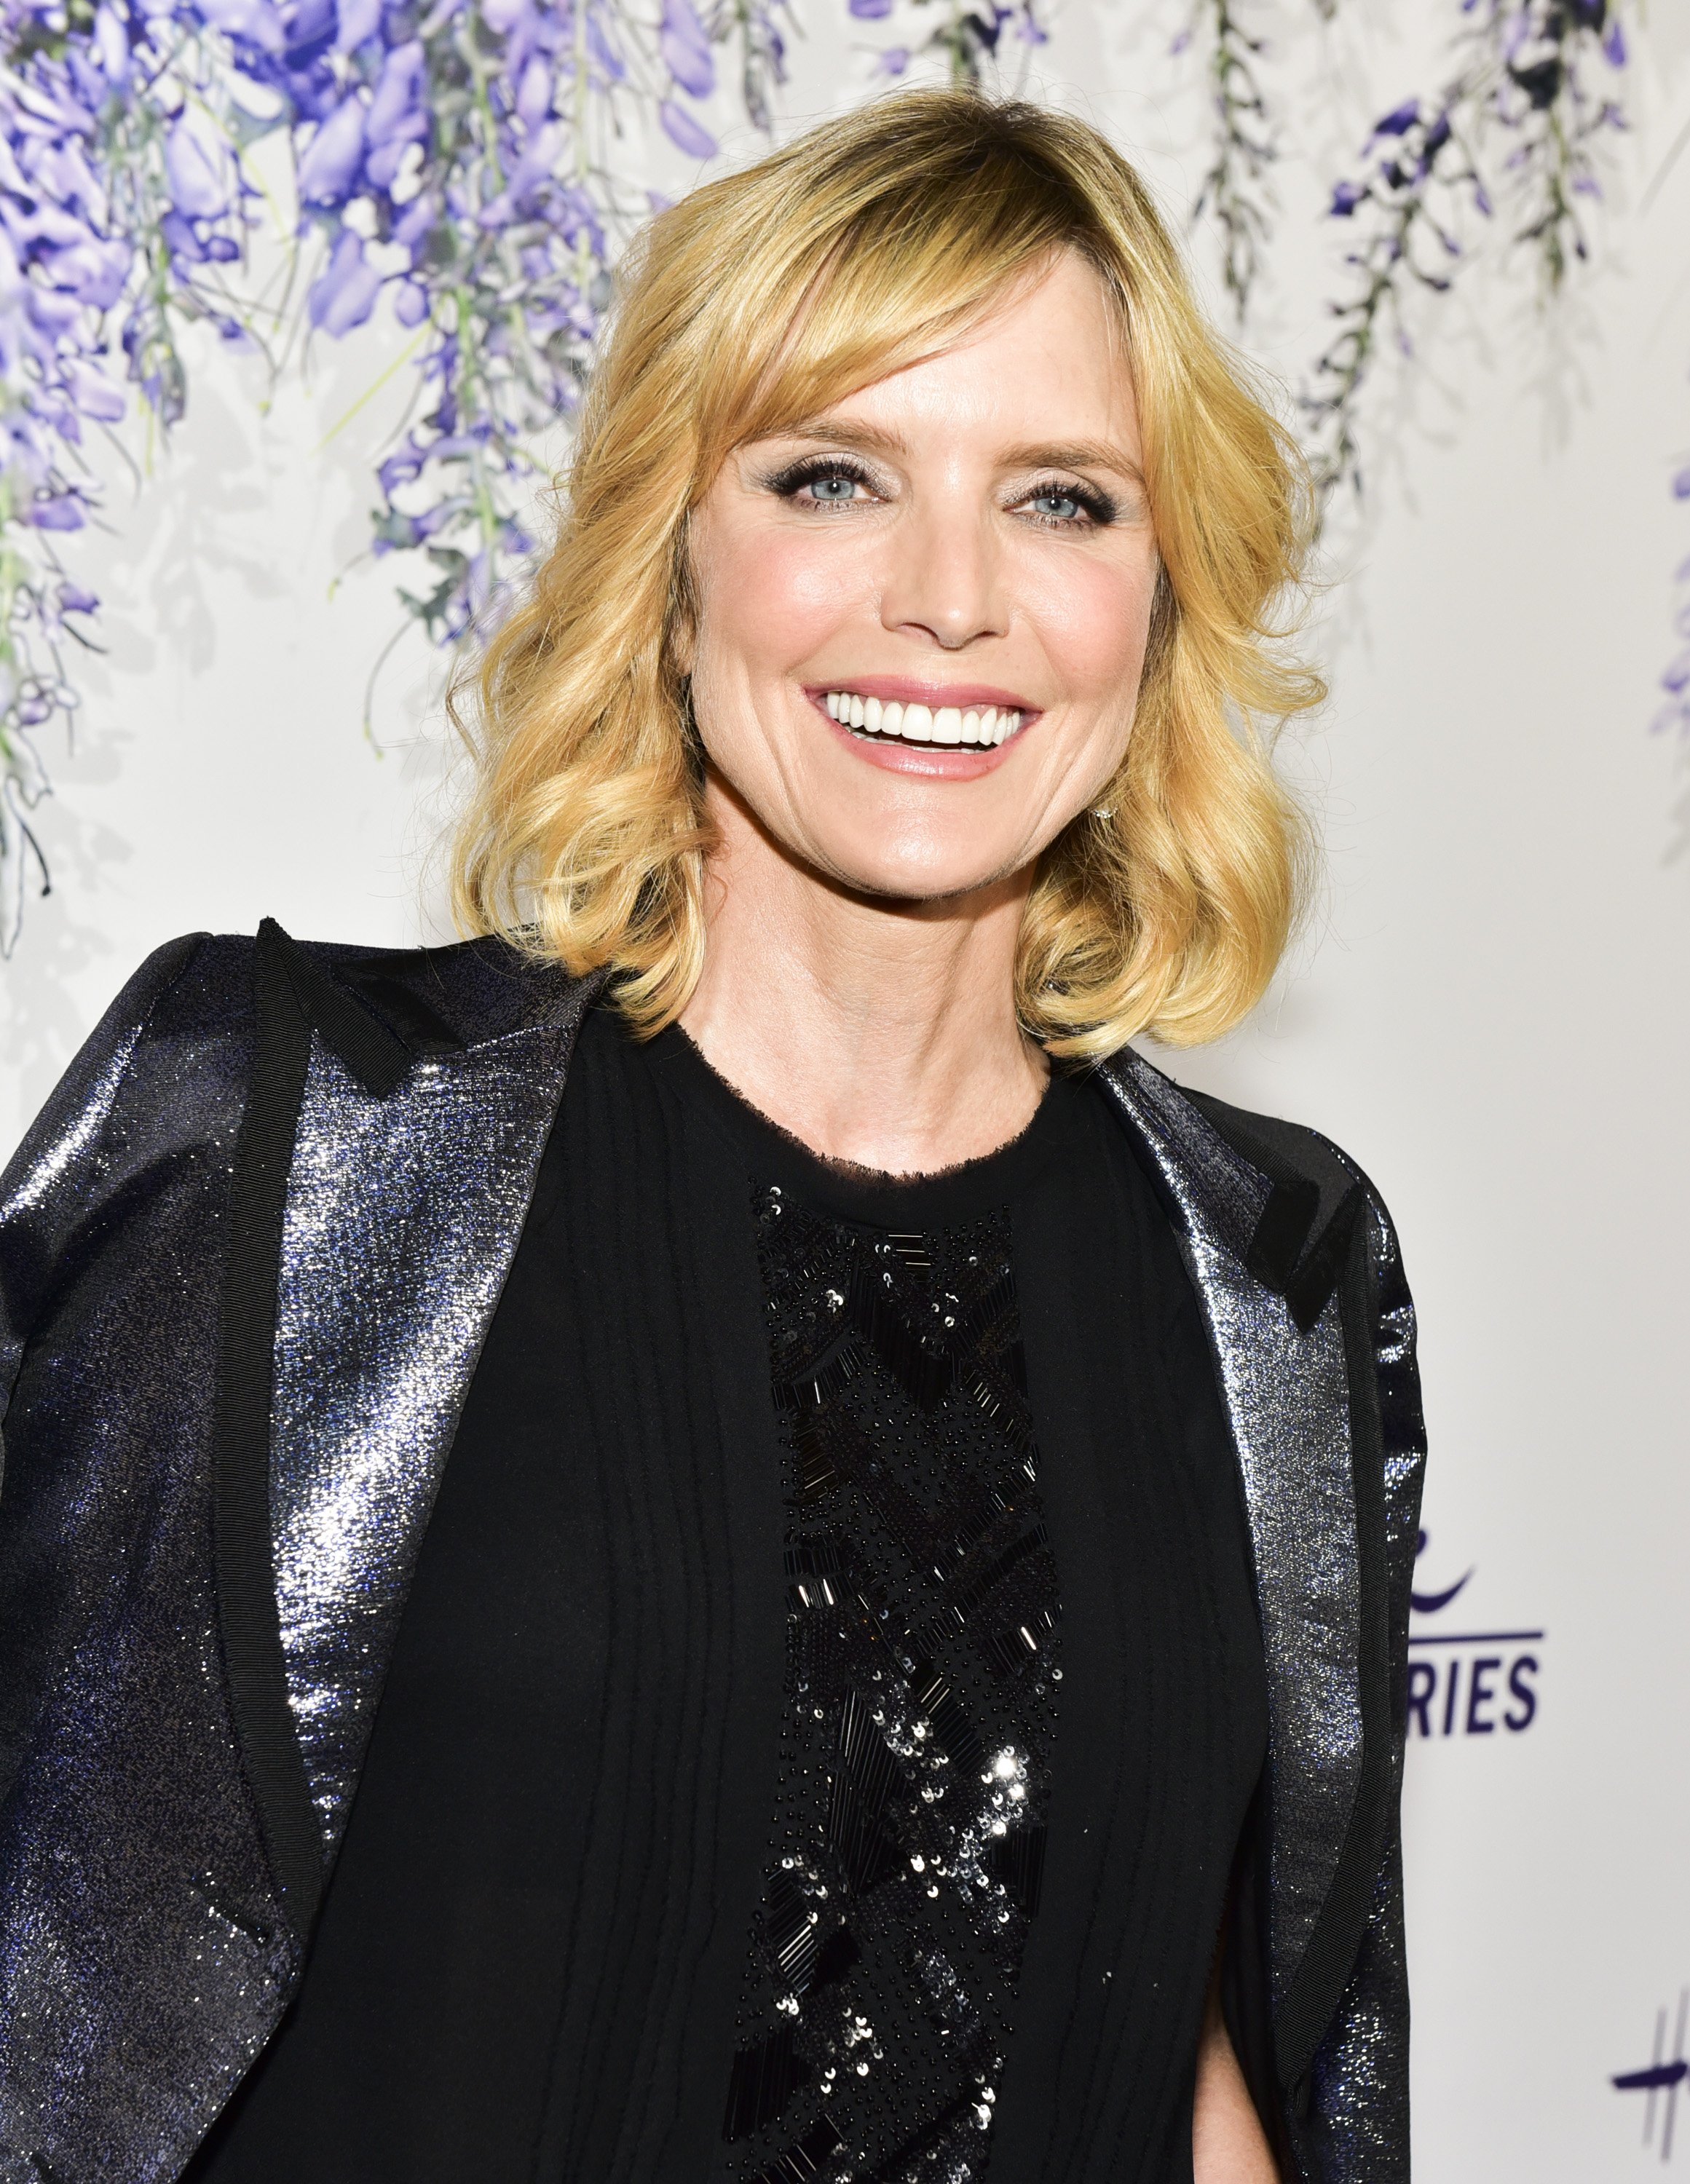 Courtney Thorne-Smith attends the 2018 Hallmark Channel Summer TCA at a private residence on July 26, 2018, in Beverly Hills, California. | Source: Getty Images.